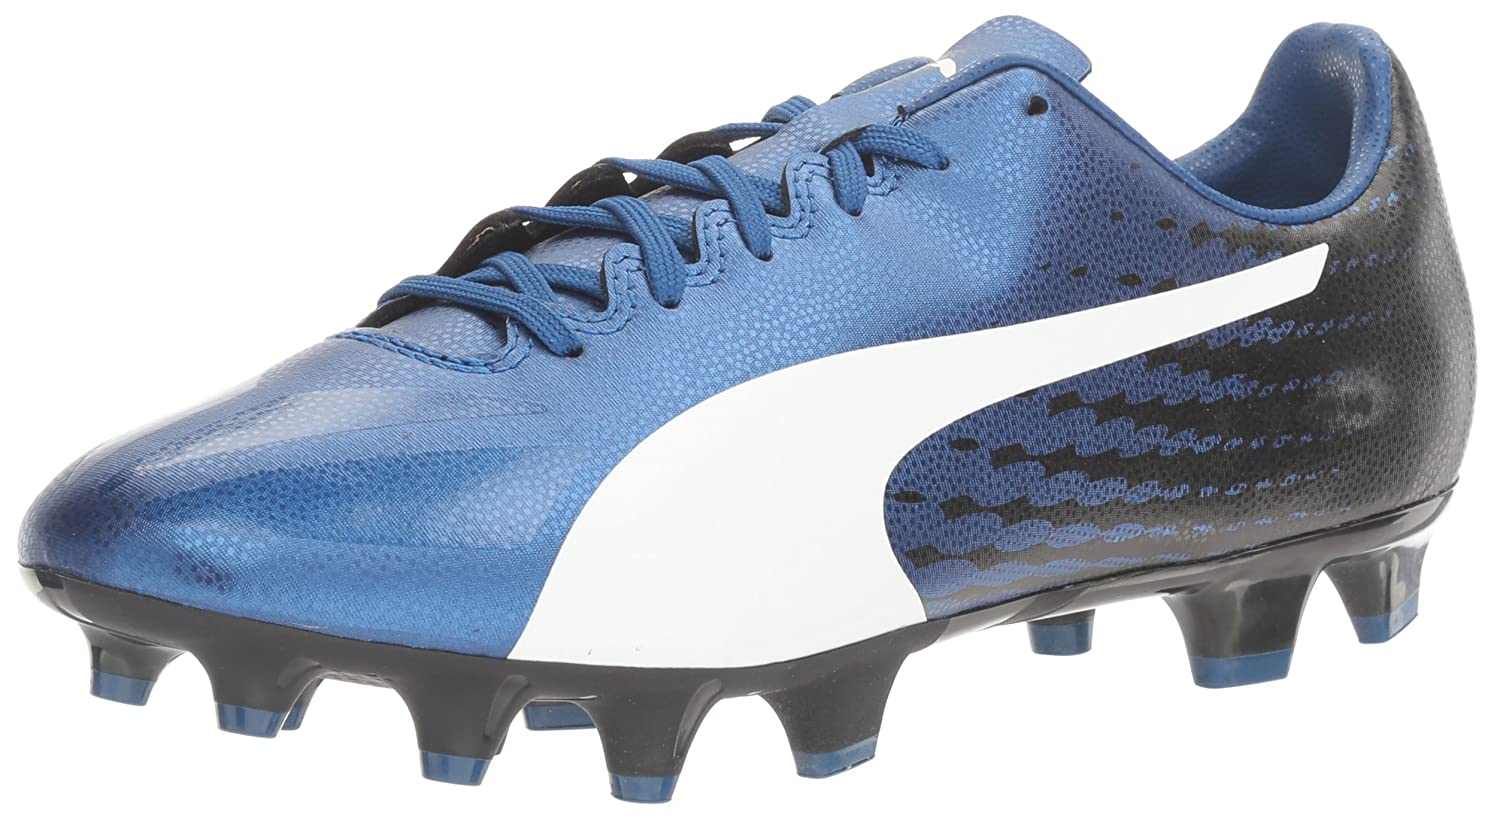 PUMA メンズ B01LDV60U8 10 D(M) US|True Blue-puma White-puma Black True Blue-puma White-puma Black 10 D(M) US